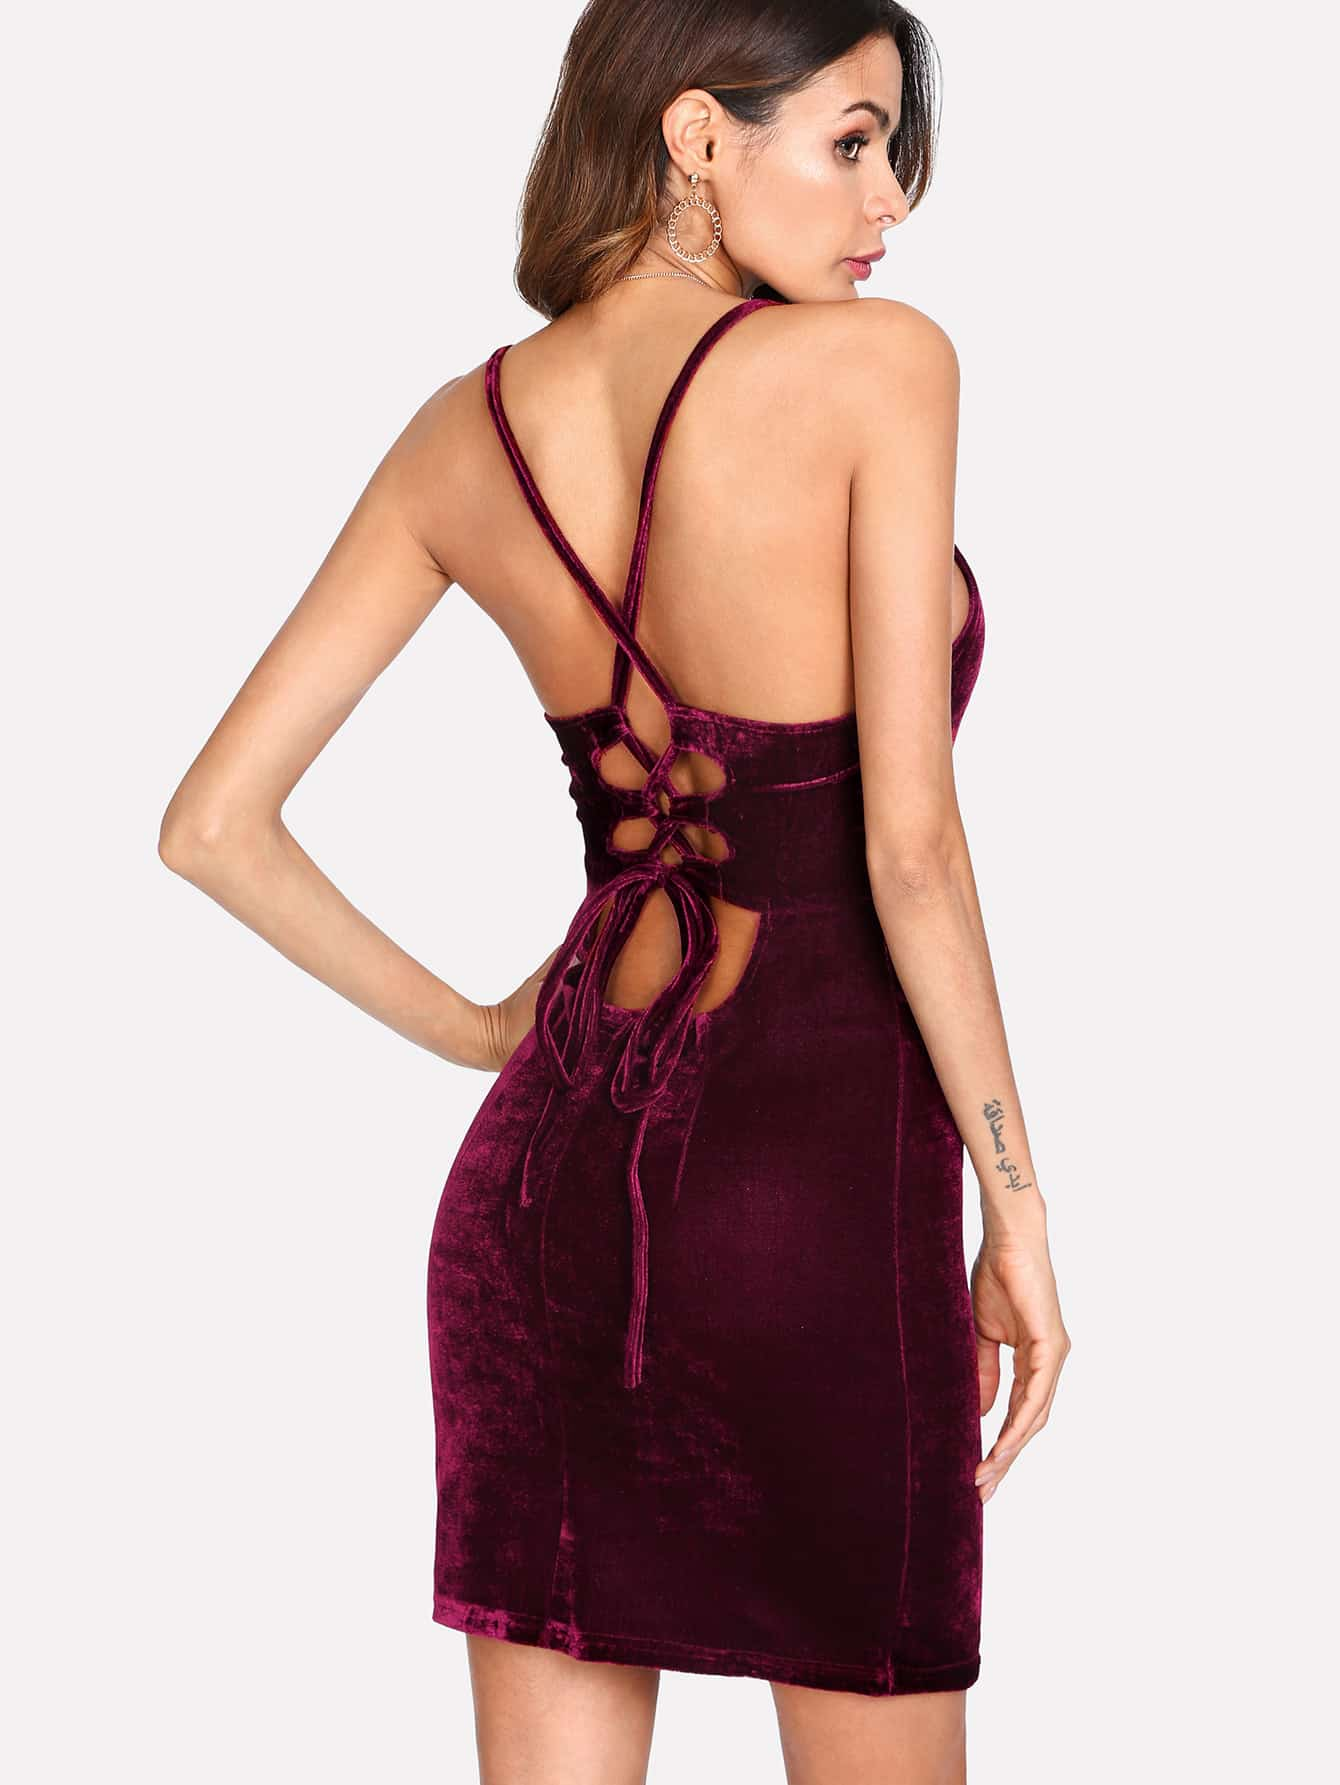 Lace Up Open Back Velvet Cami Dress criss cross lace up open back cami dress